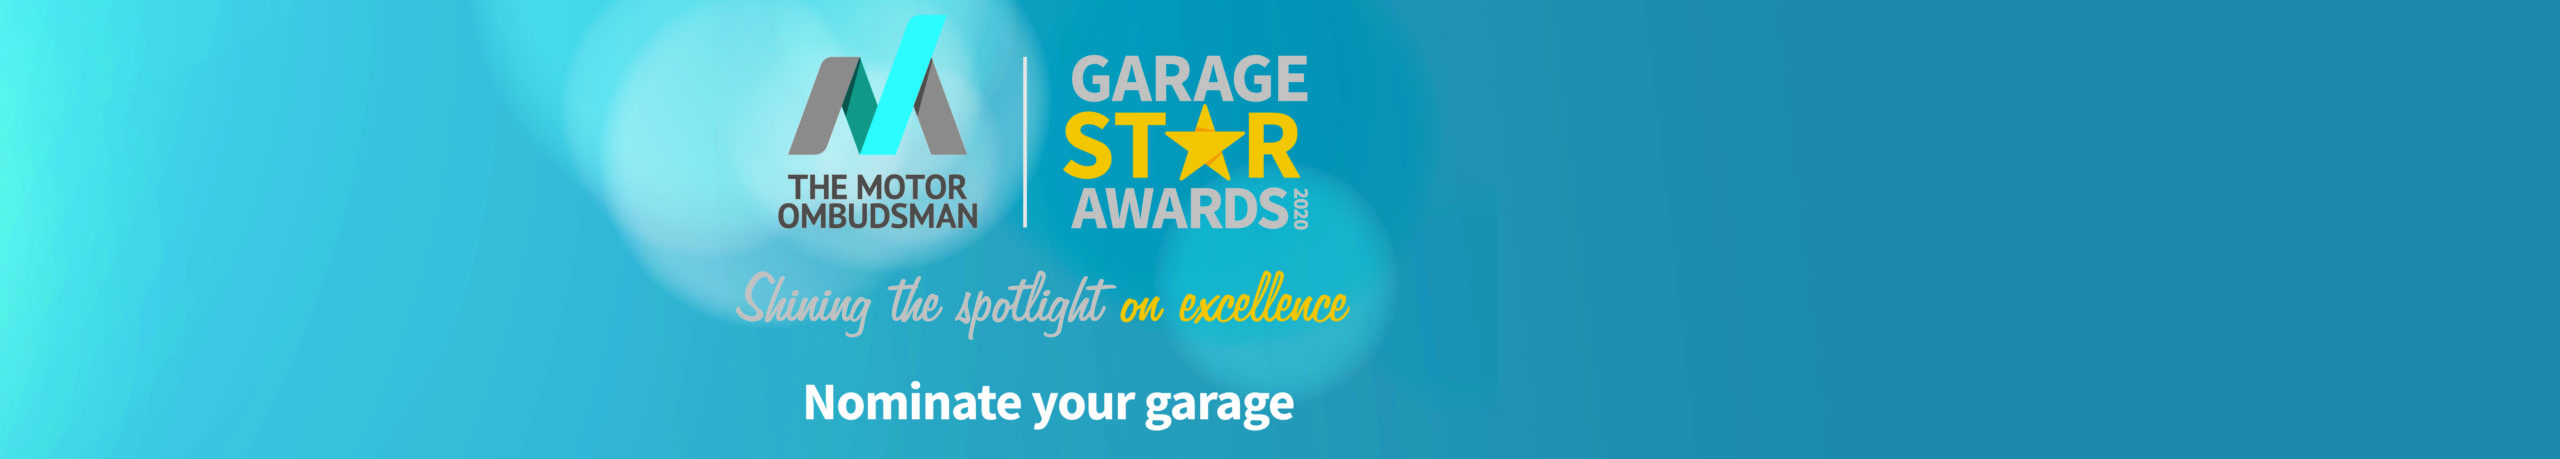 Garage Star Awards